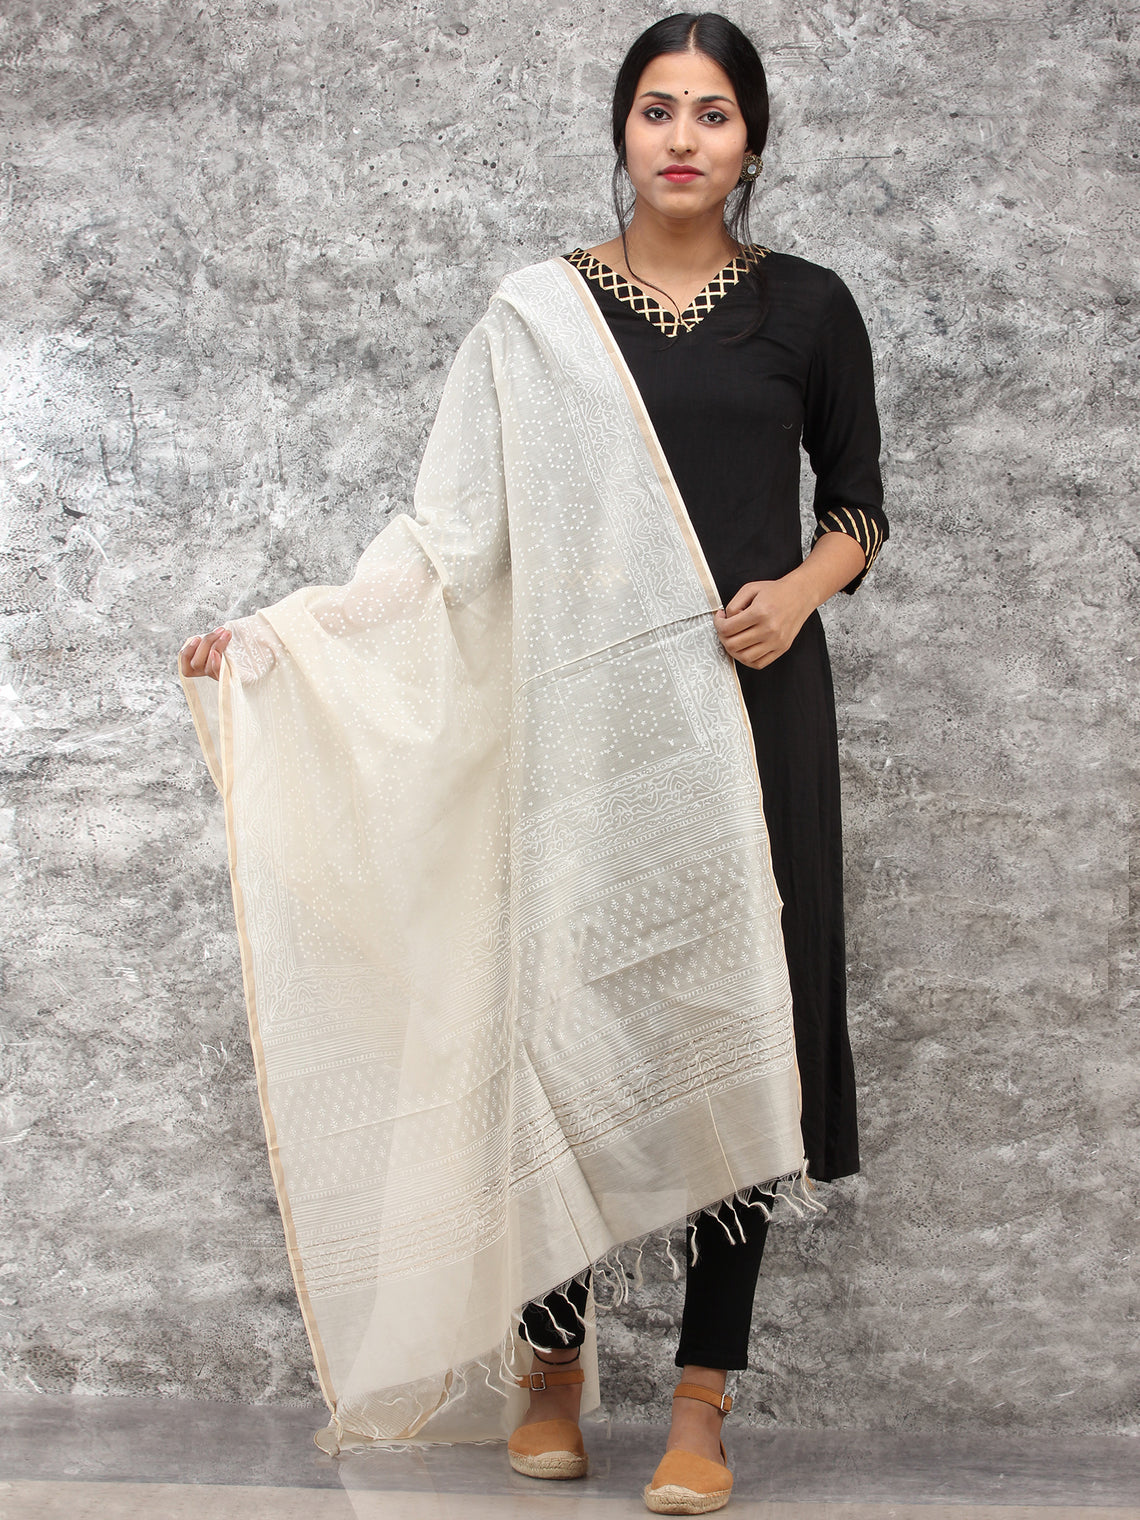 White Gold Chanderi Hand Block Printed Dupatta - D04170785